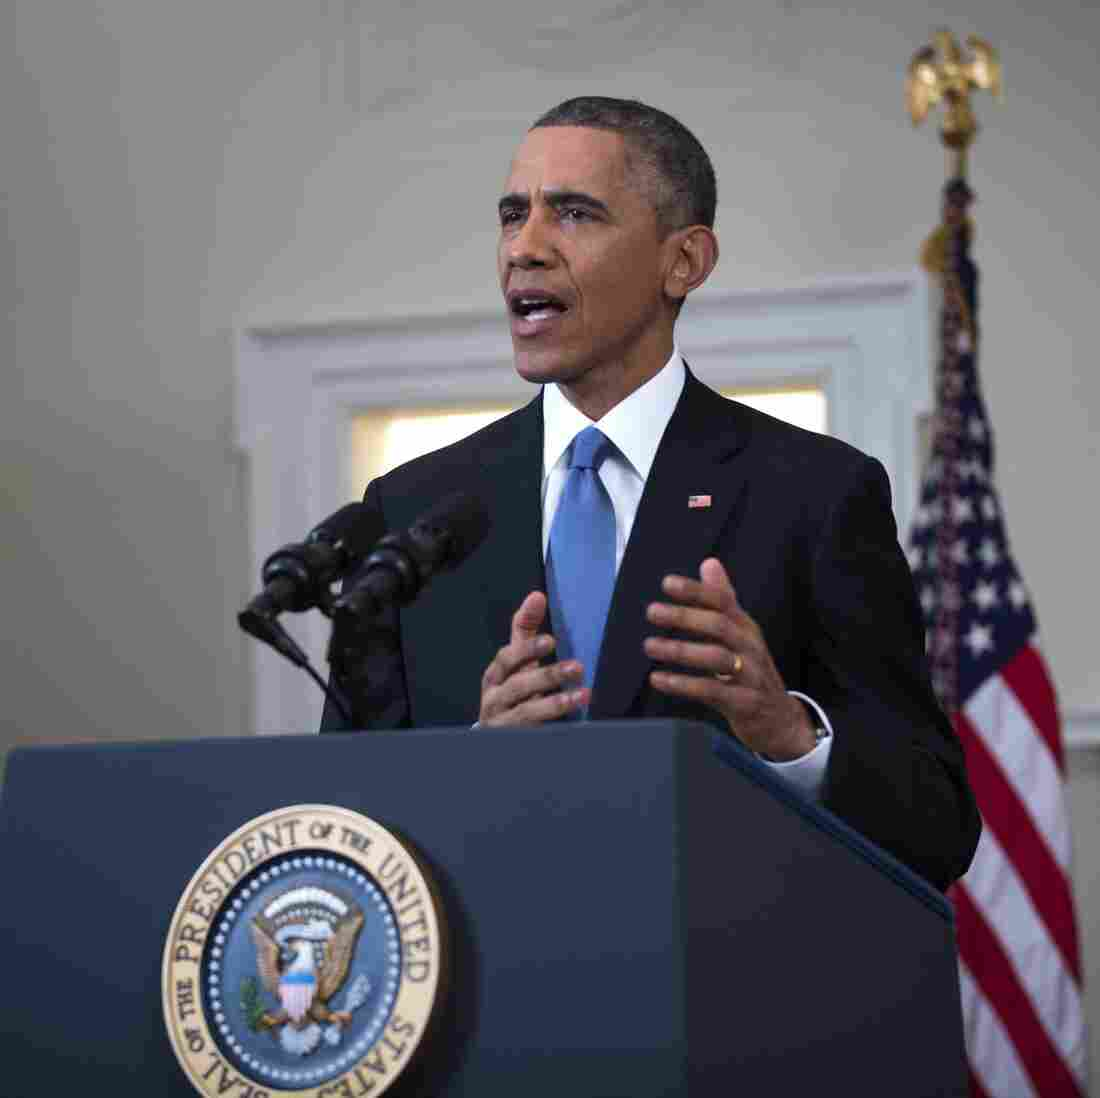 President Obama announces changes to U.S. policy on Cuba, including relaxing restrictions on U.S. banking in the country, in Washington, D.C. on Wednesday.